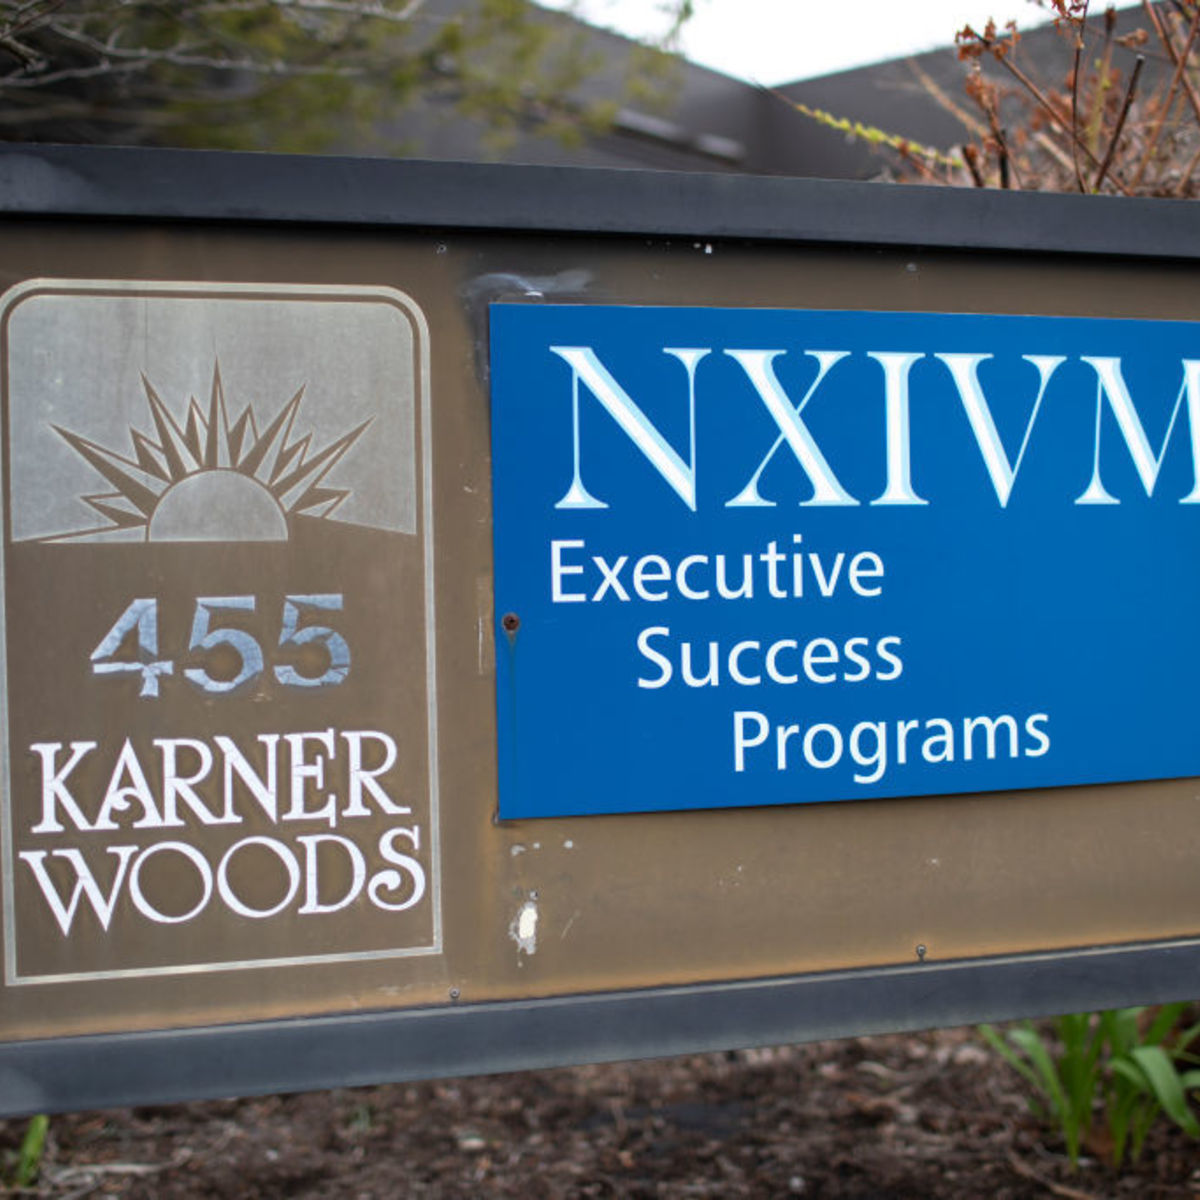 nxivm headquarters getty